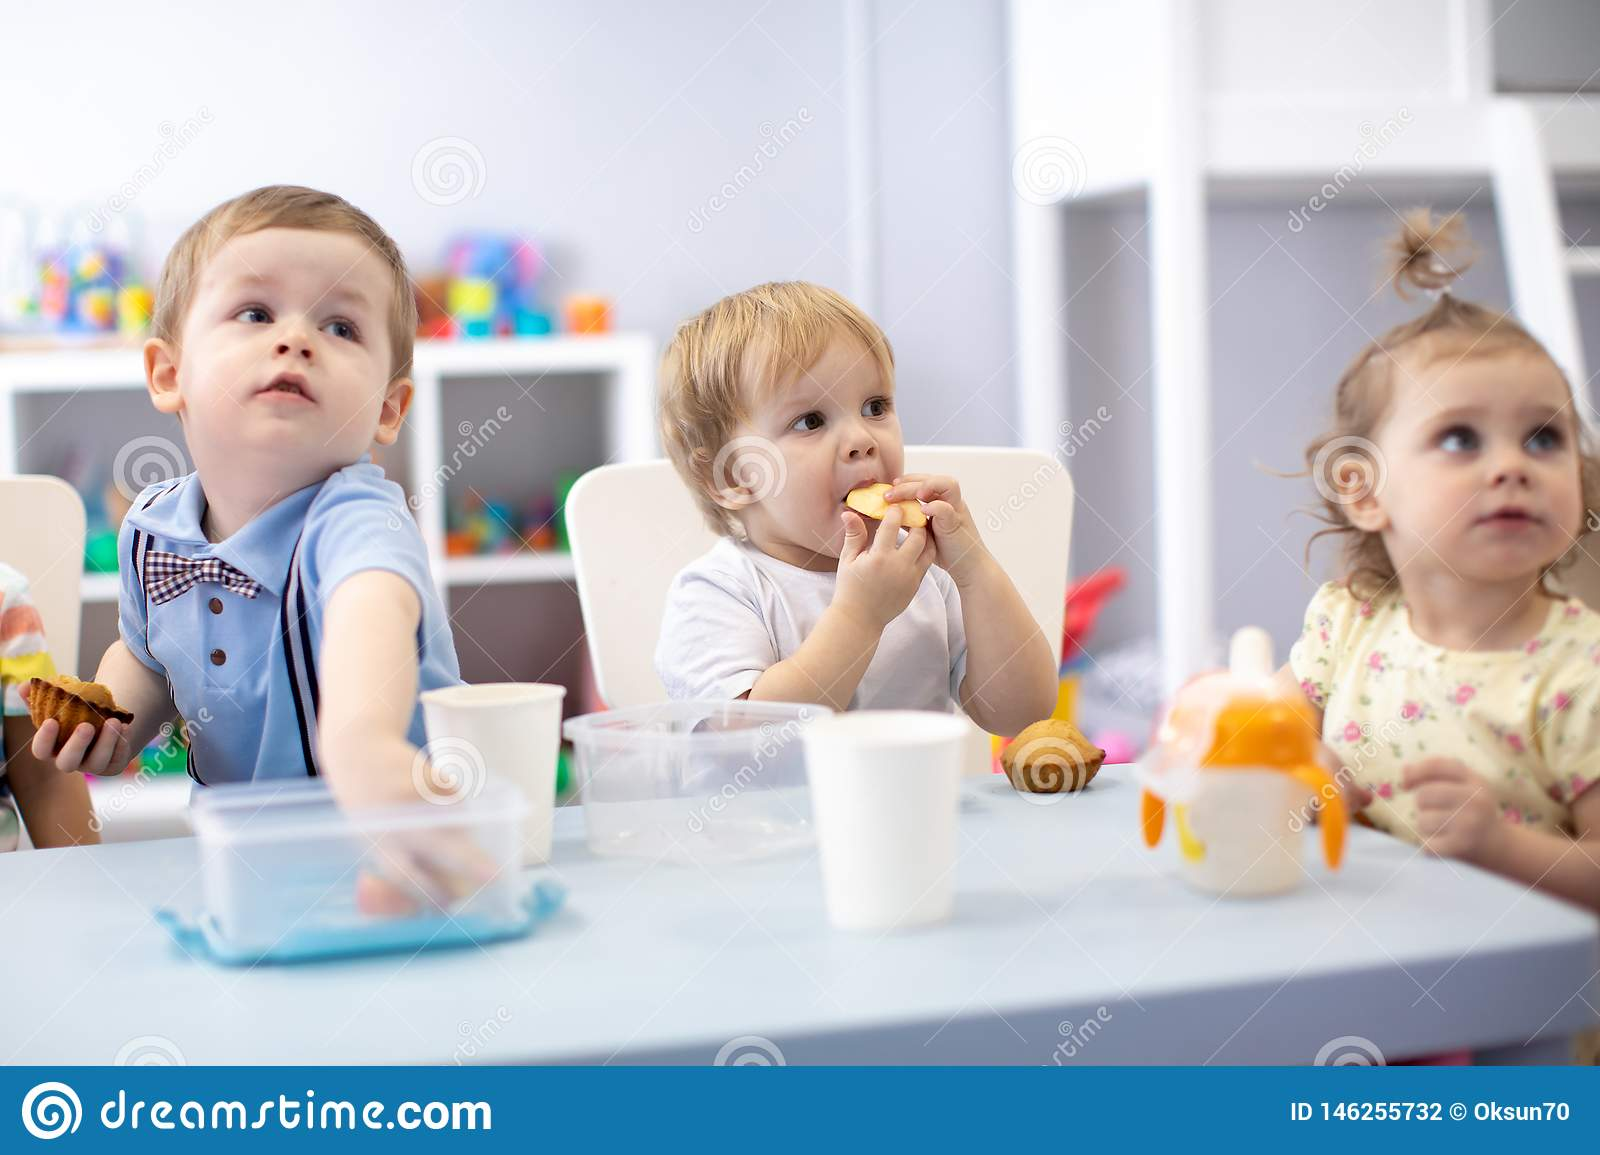 Babies children eating healthy food in nursery or kindergarten